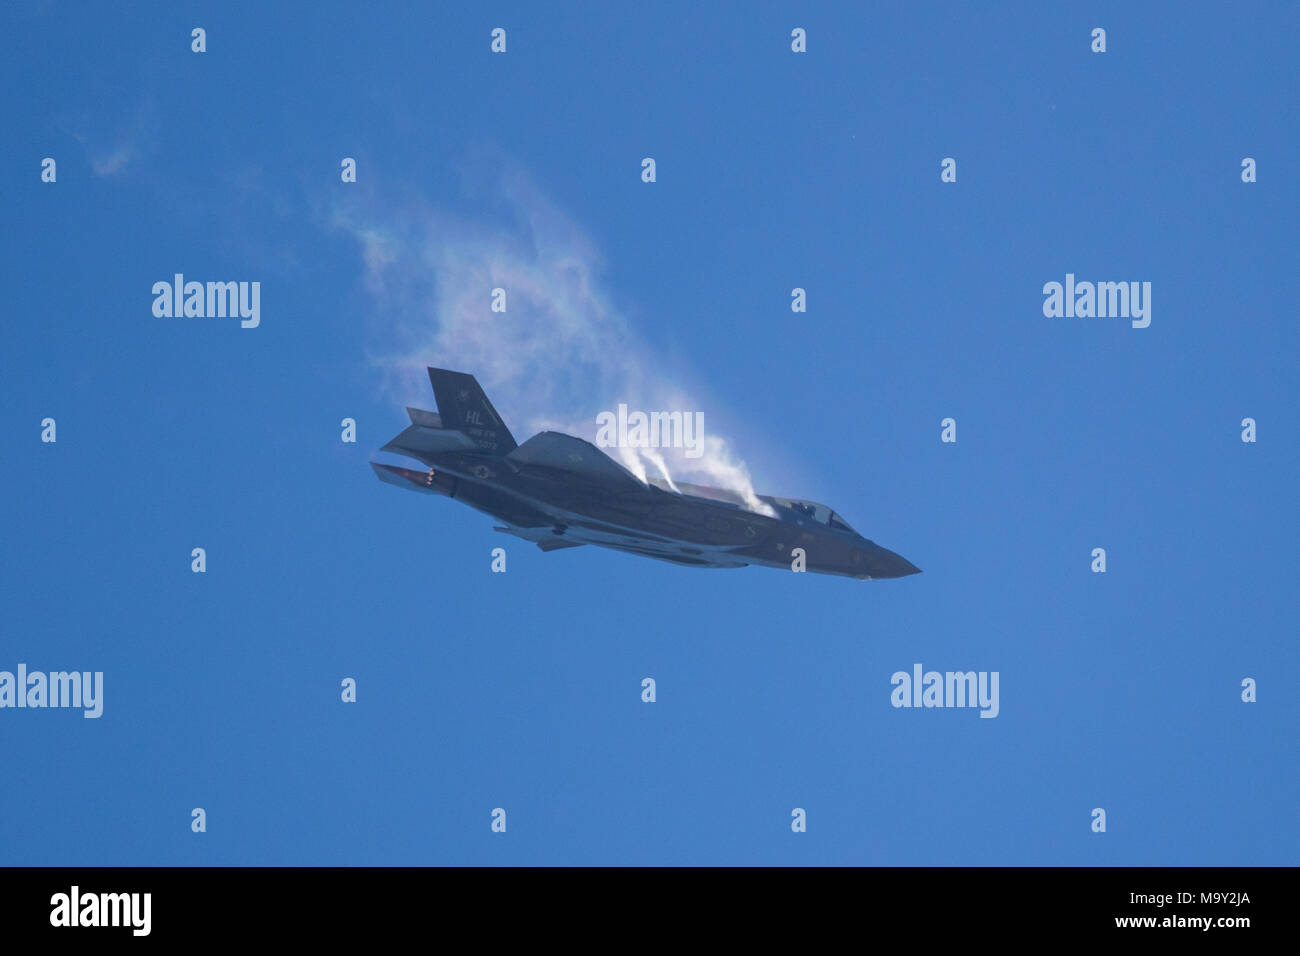 PARIS, FRANCE - JUN 23, 2017: US Air Force Lockheed-Martin F-35 Lightning II fighter jet free fall maneuvre during a demo on its debut at the Paris Ai - Stock Image